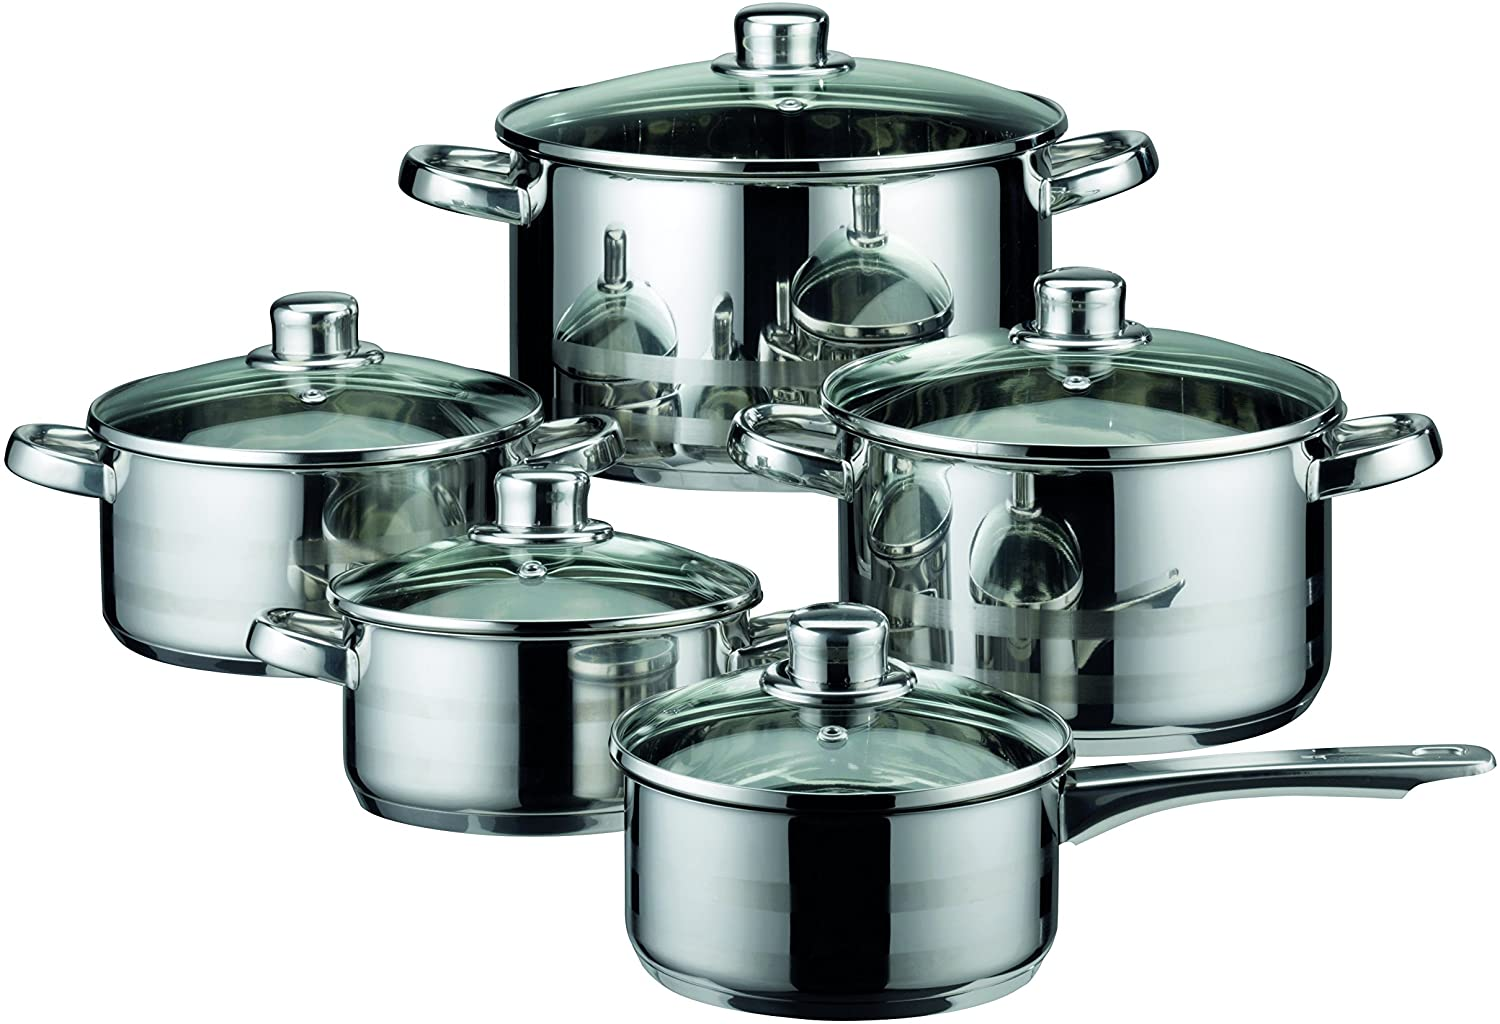 Top 10 Best Signature Cookware For Gas Stove [ Buying Guide -2021] 9